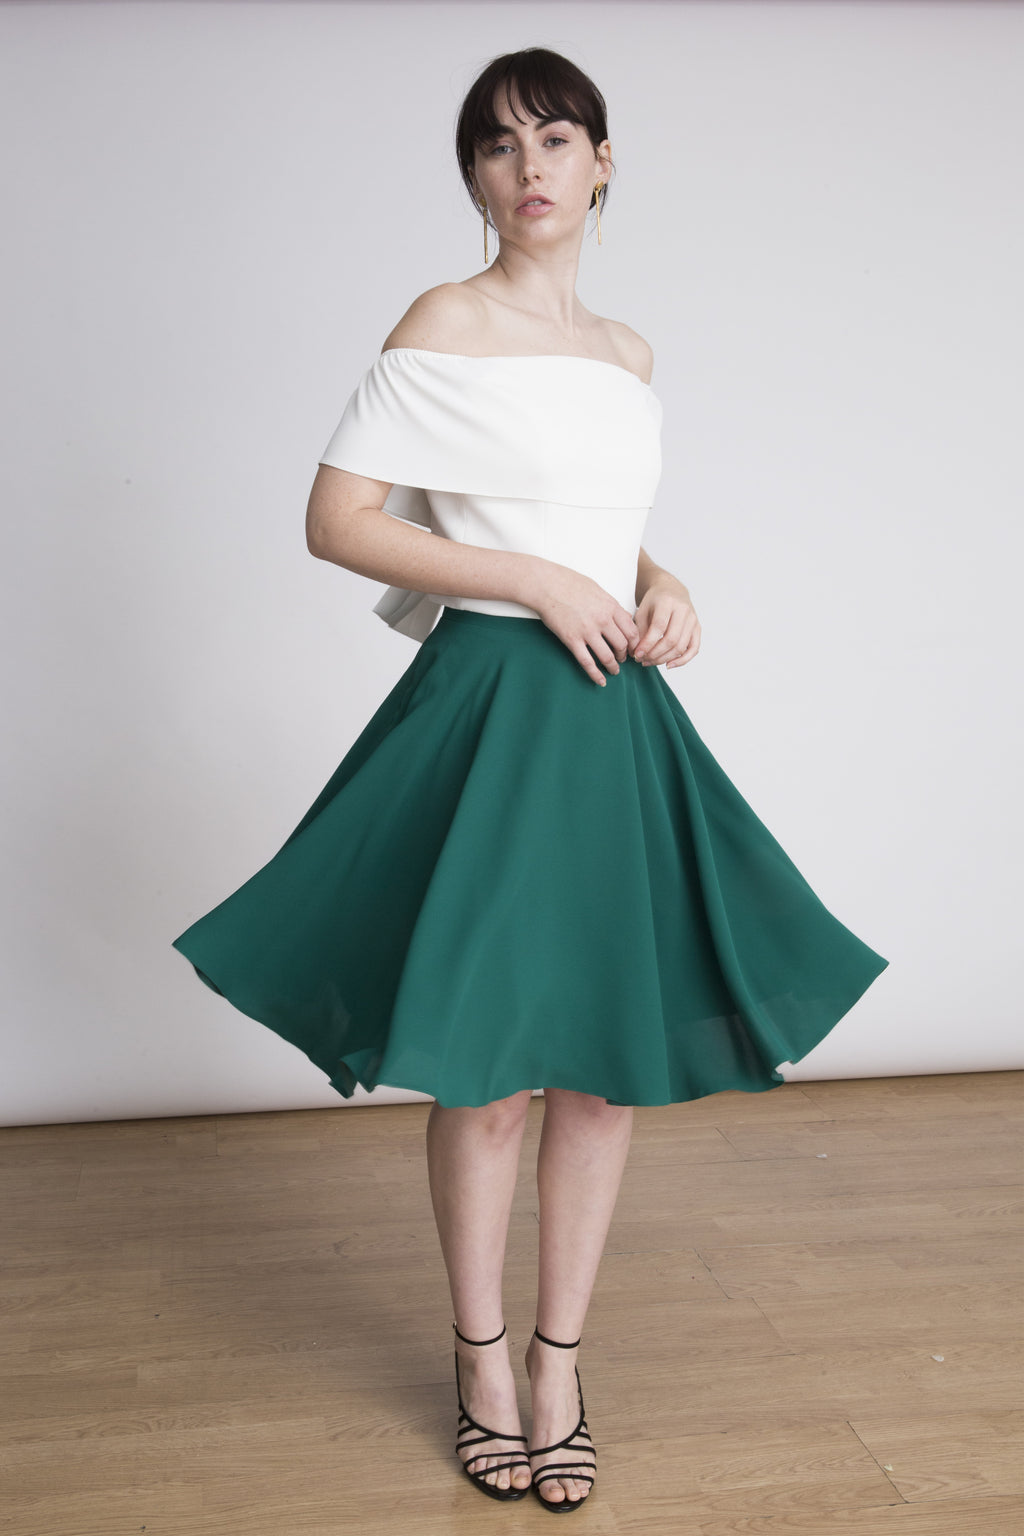 Flared Knee length skirt - Emerald Green  A fully lined skirt perfect for wedding guests or to assist to a formal event such as holy communions or christenings. Lauren Lynn London mini / midi Skirt in green colour. Made in light crepe and fully lined. This skirt is perfect for formal events and weddings. Falda verde de Lauren Lynn por encima de la rodilla. Esta falda perfecta para bodas de día, bautizos y comuniones. La falda Claire está completamente forrada y realizada en un ligero crepé.